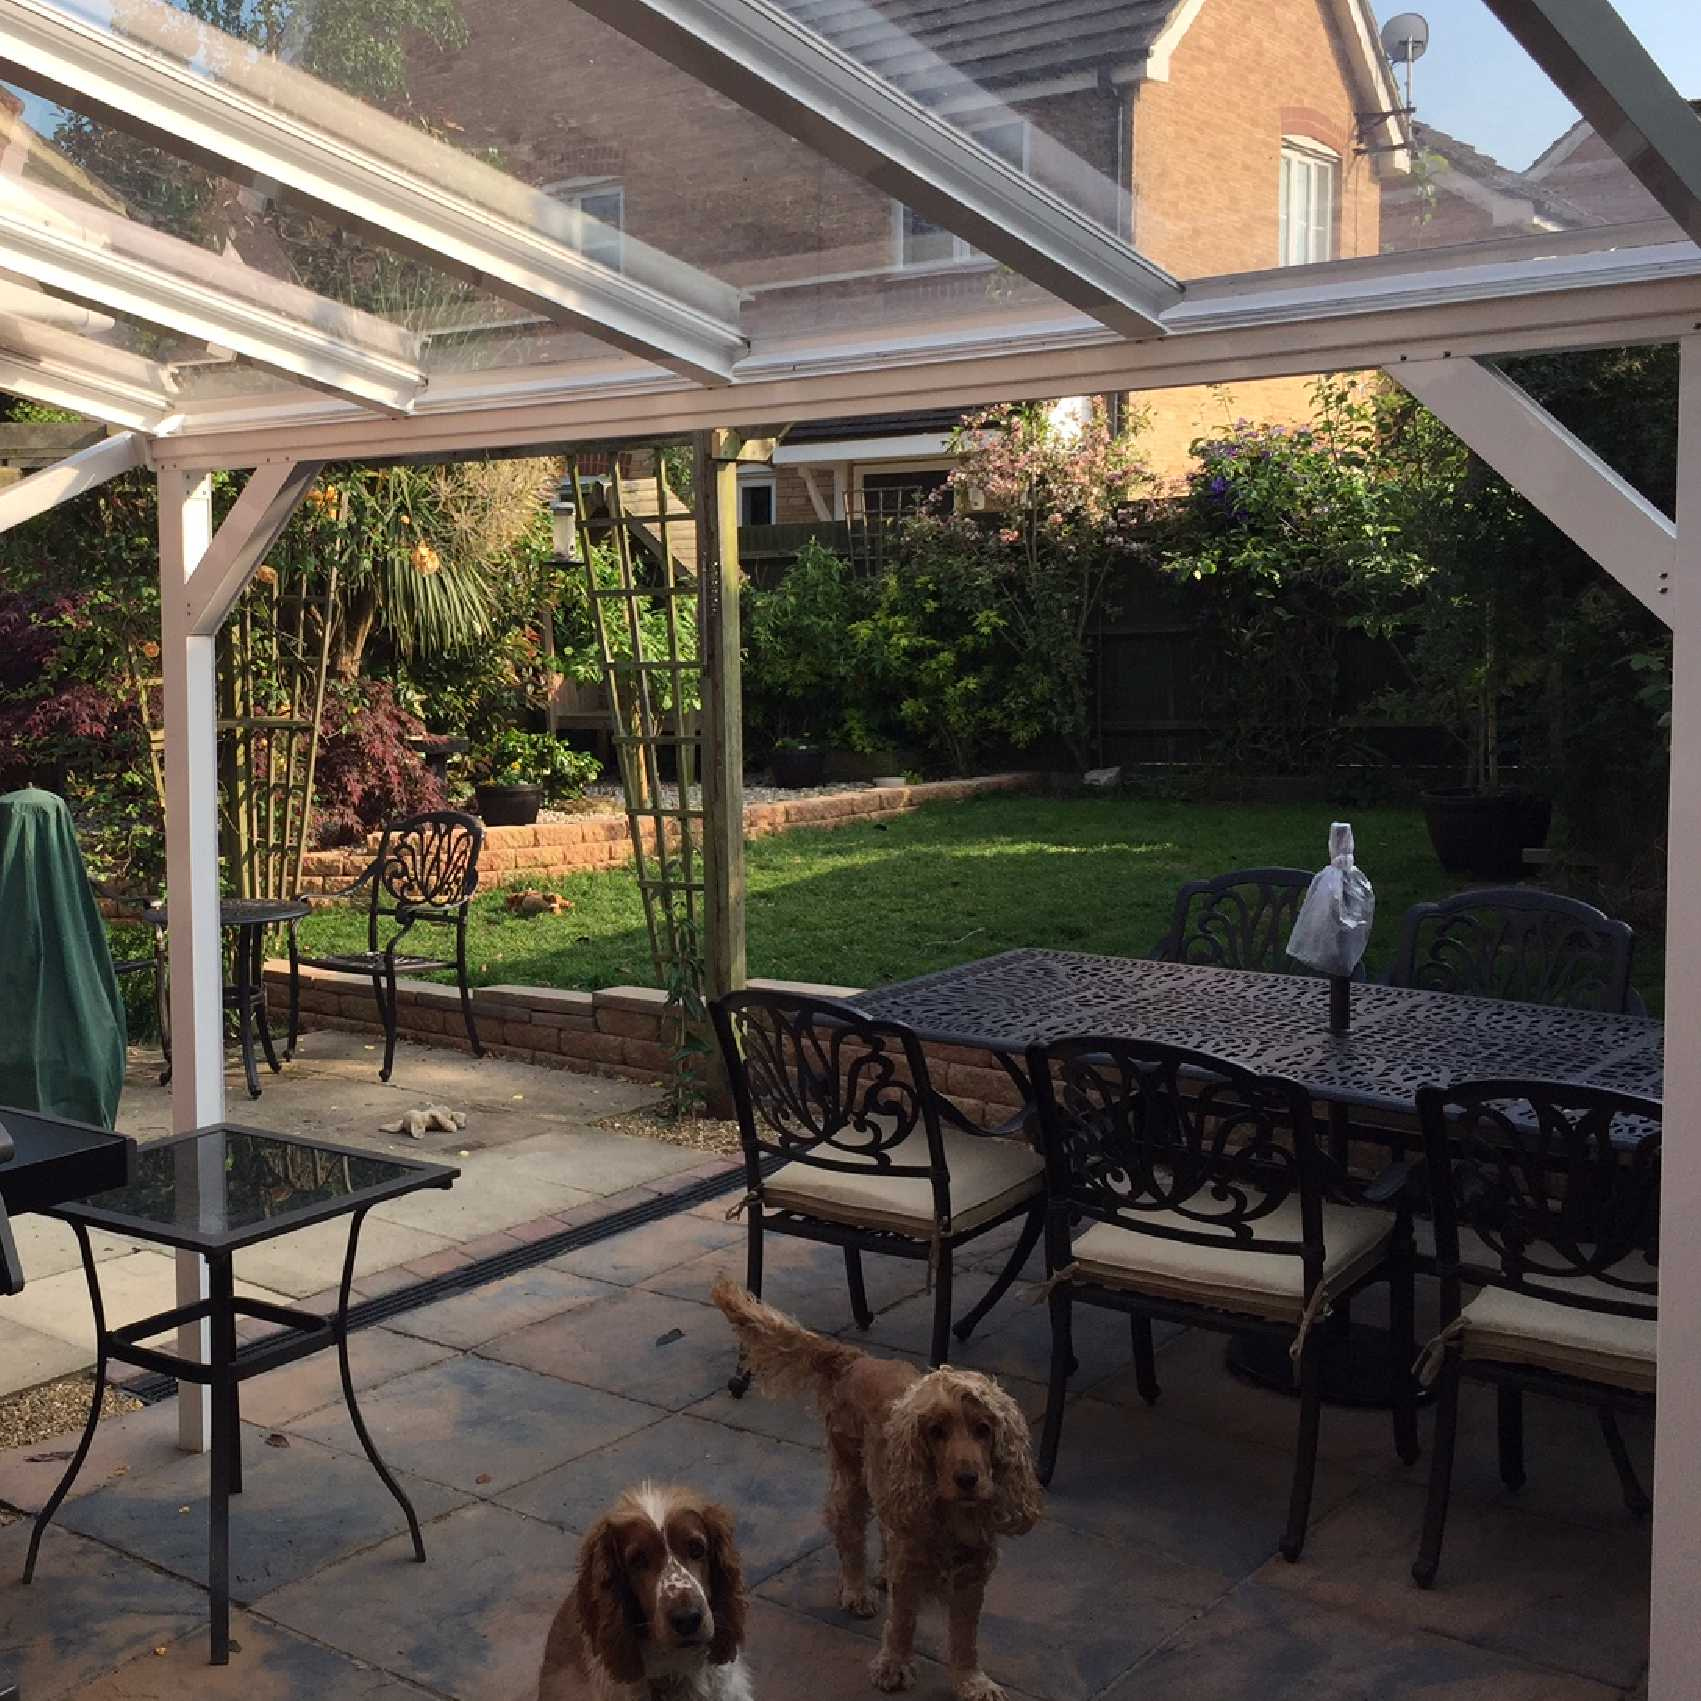 Affordable Omega Smart White Lean-To Canopy with 6mm Glass Clear Plate Polycarbonate Glazing - 3.5m (W) x 1.5m (P), (3) Supporting Posts